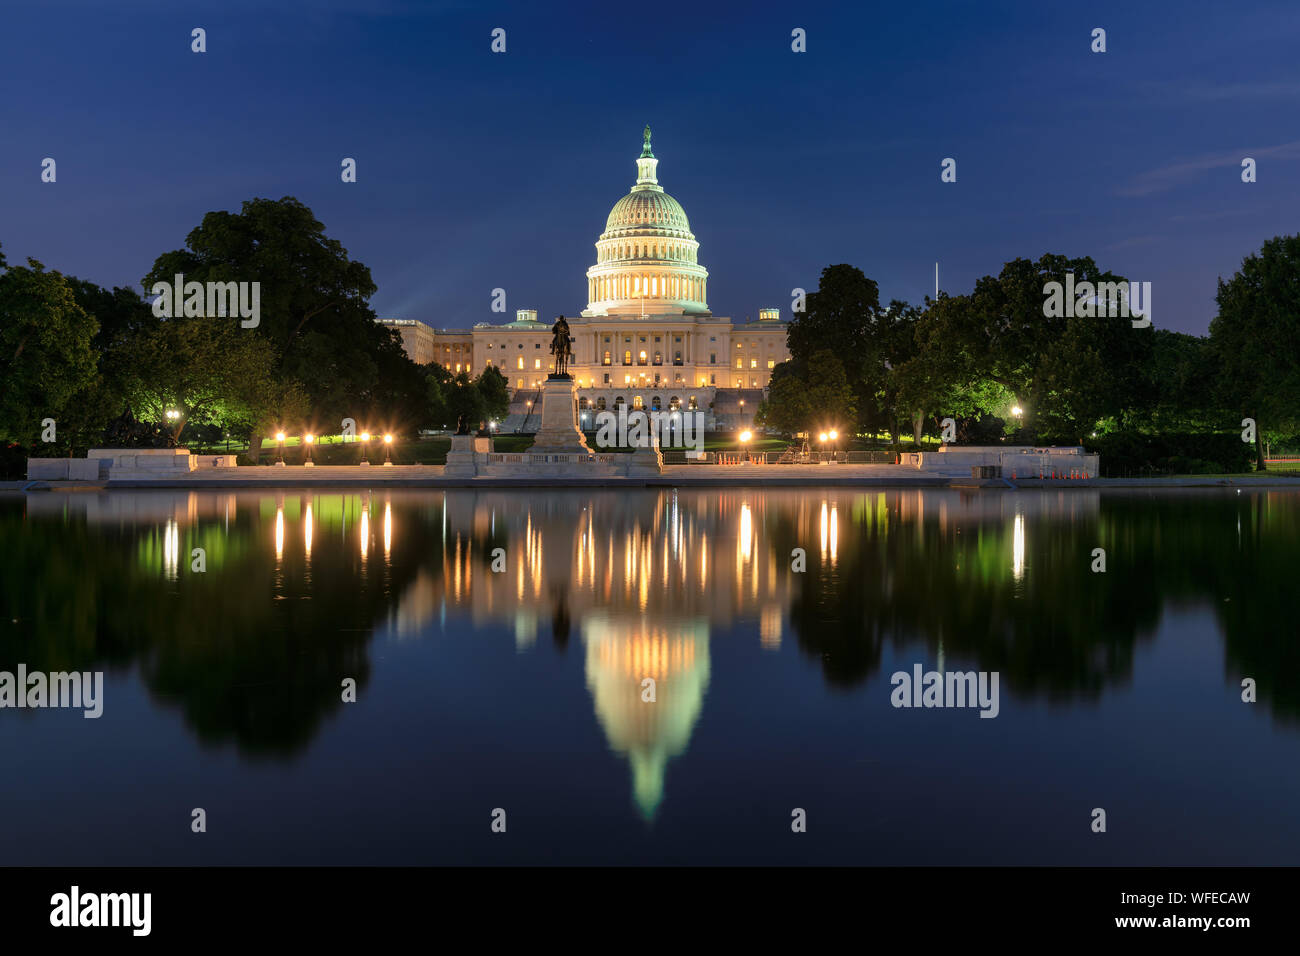 United States Capitol Building at night Banque D'Images